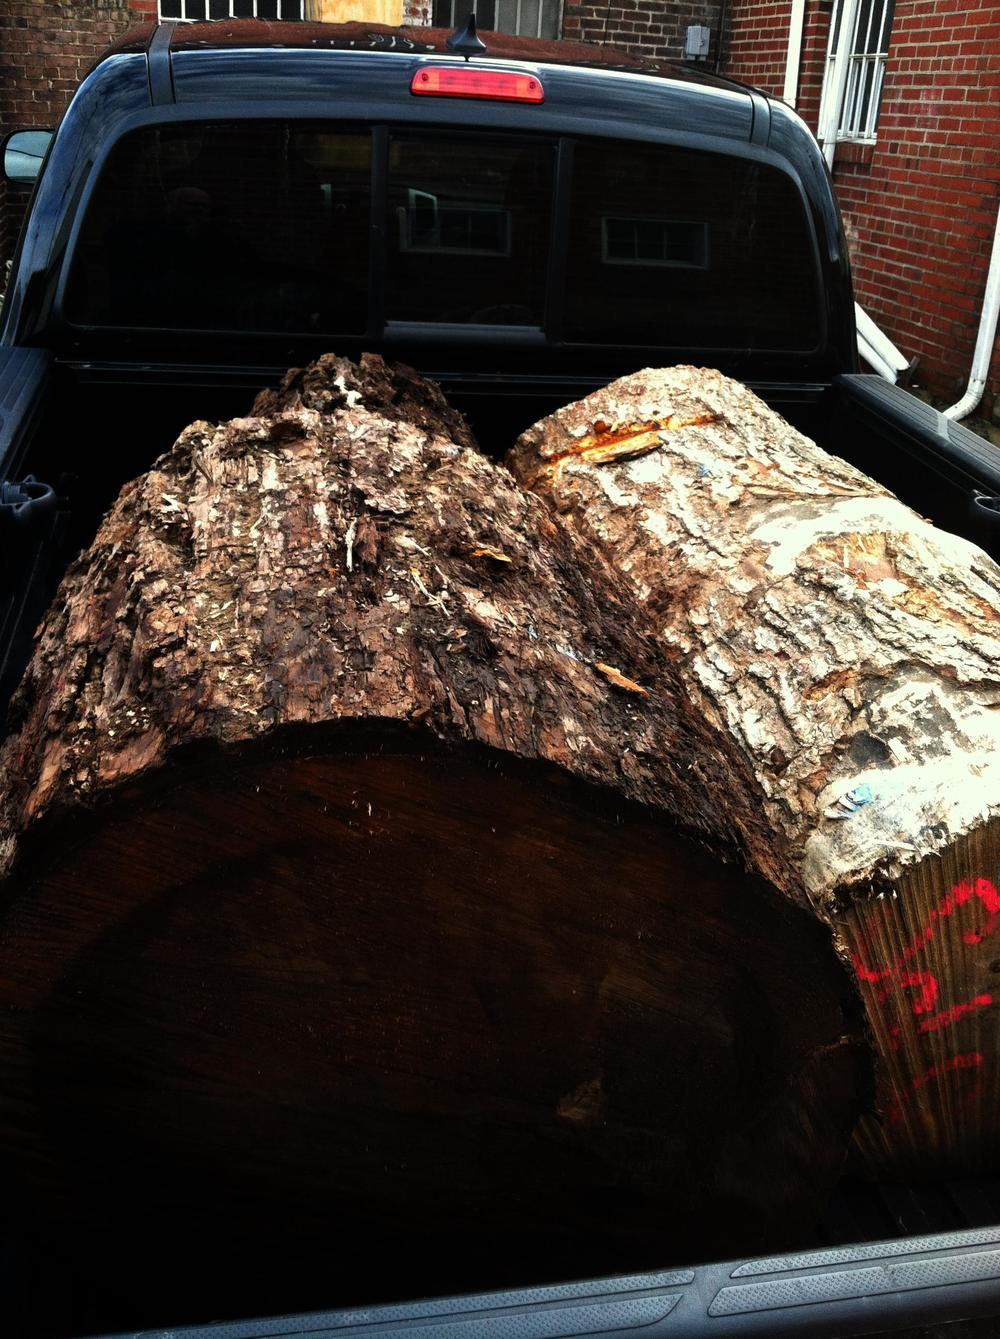 My Logging Truck, fully loaded and probably on my way to shuttle kids around or fetch the groceries.